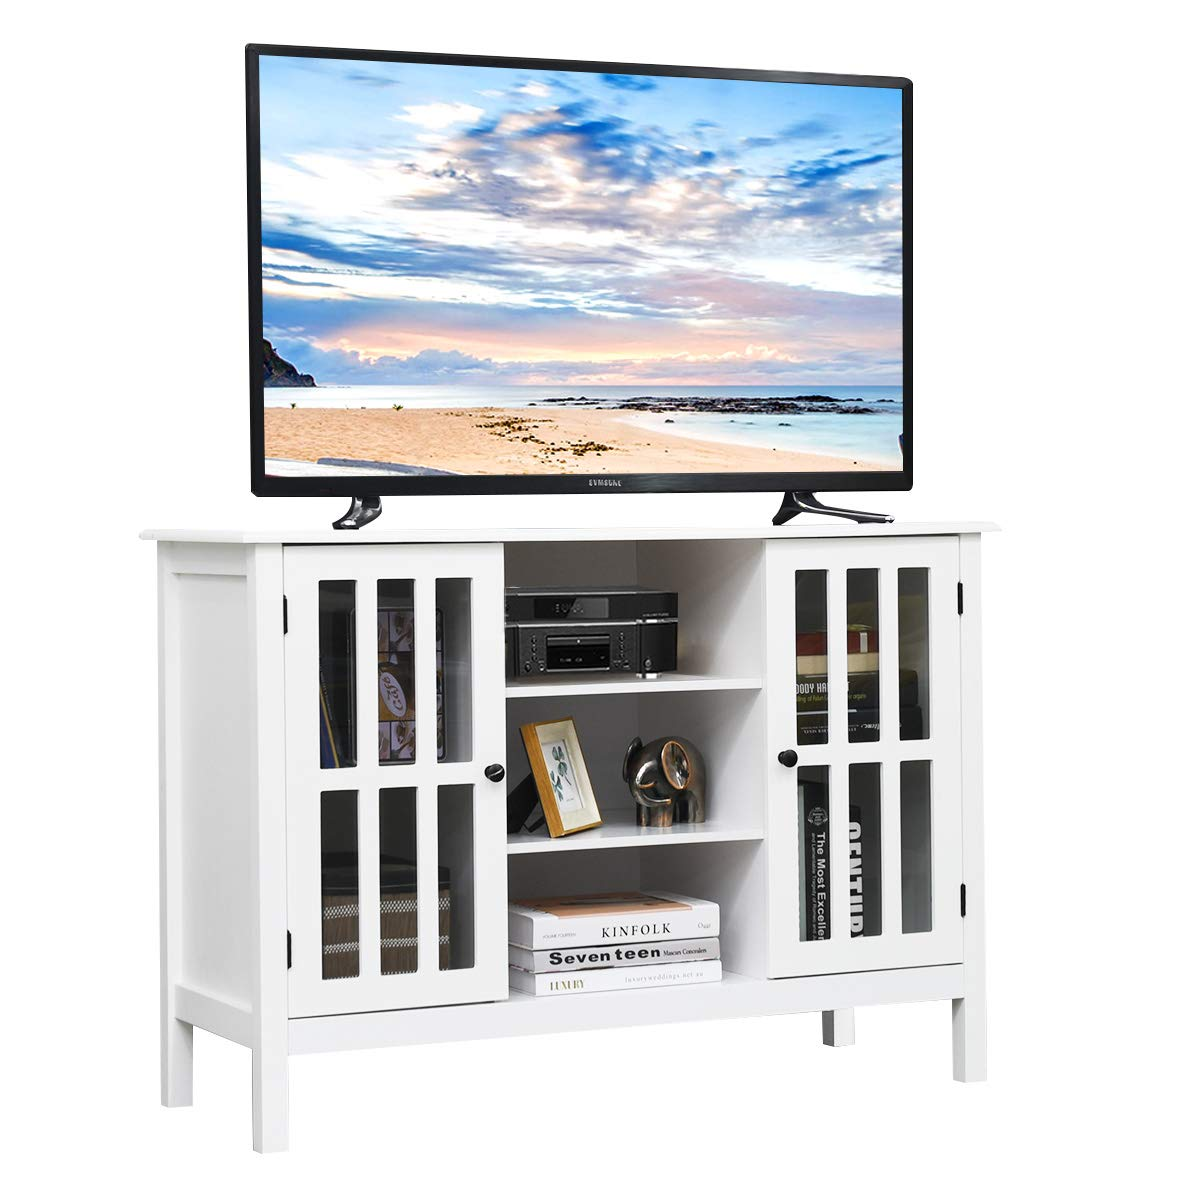 Tangkula TV Stand, Classic Design Wood Storage Console Free Standing Cabinet for TV up to 45 , Media Entertainment Center Home Living Room Furniture, TV Stand Cabinet White